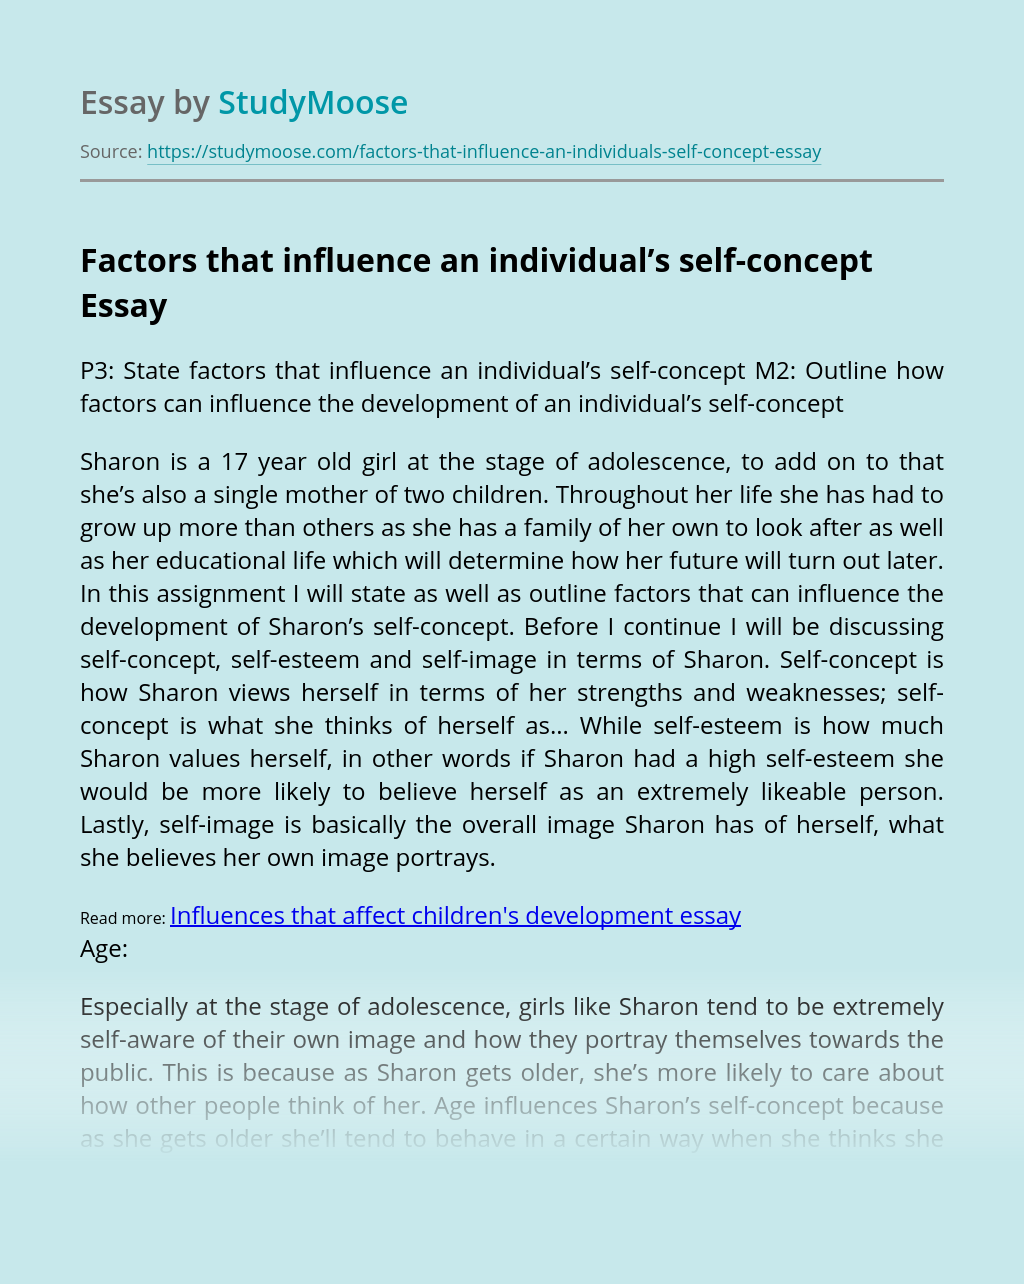 Factors that influence an individual's self-concept